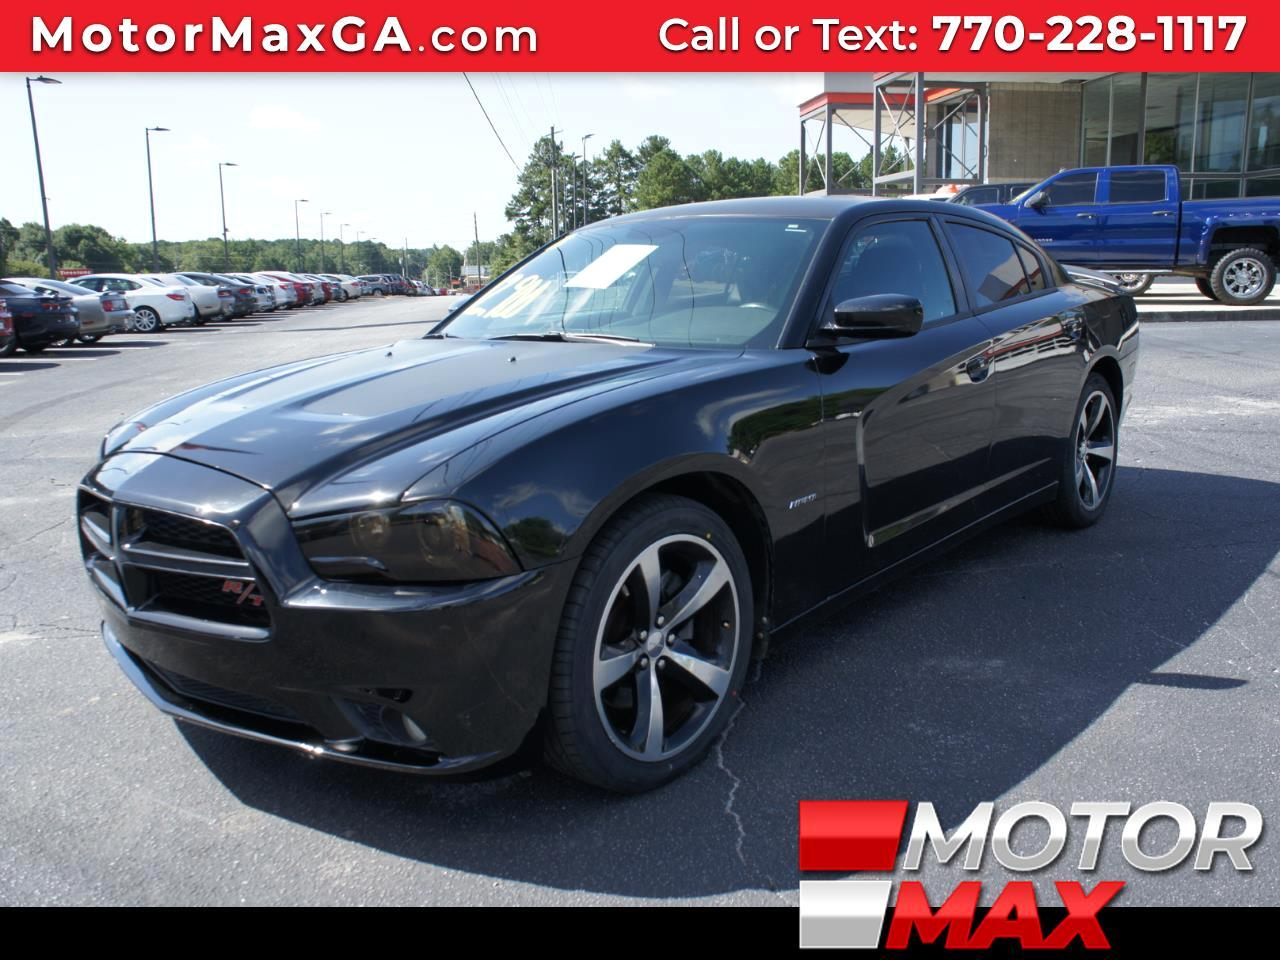 2013 Dodge Charger R/T Hemi